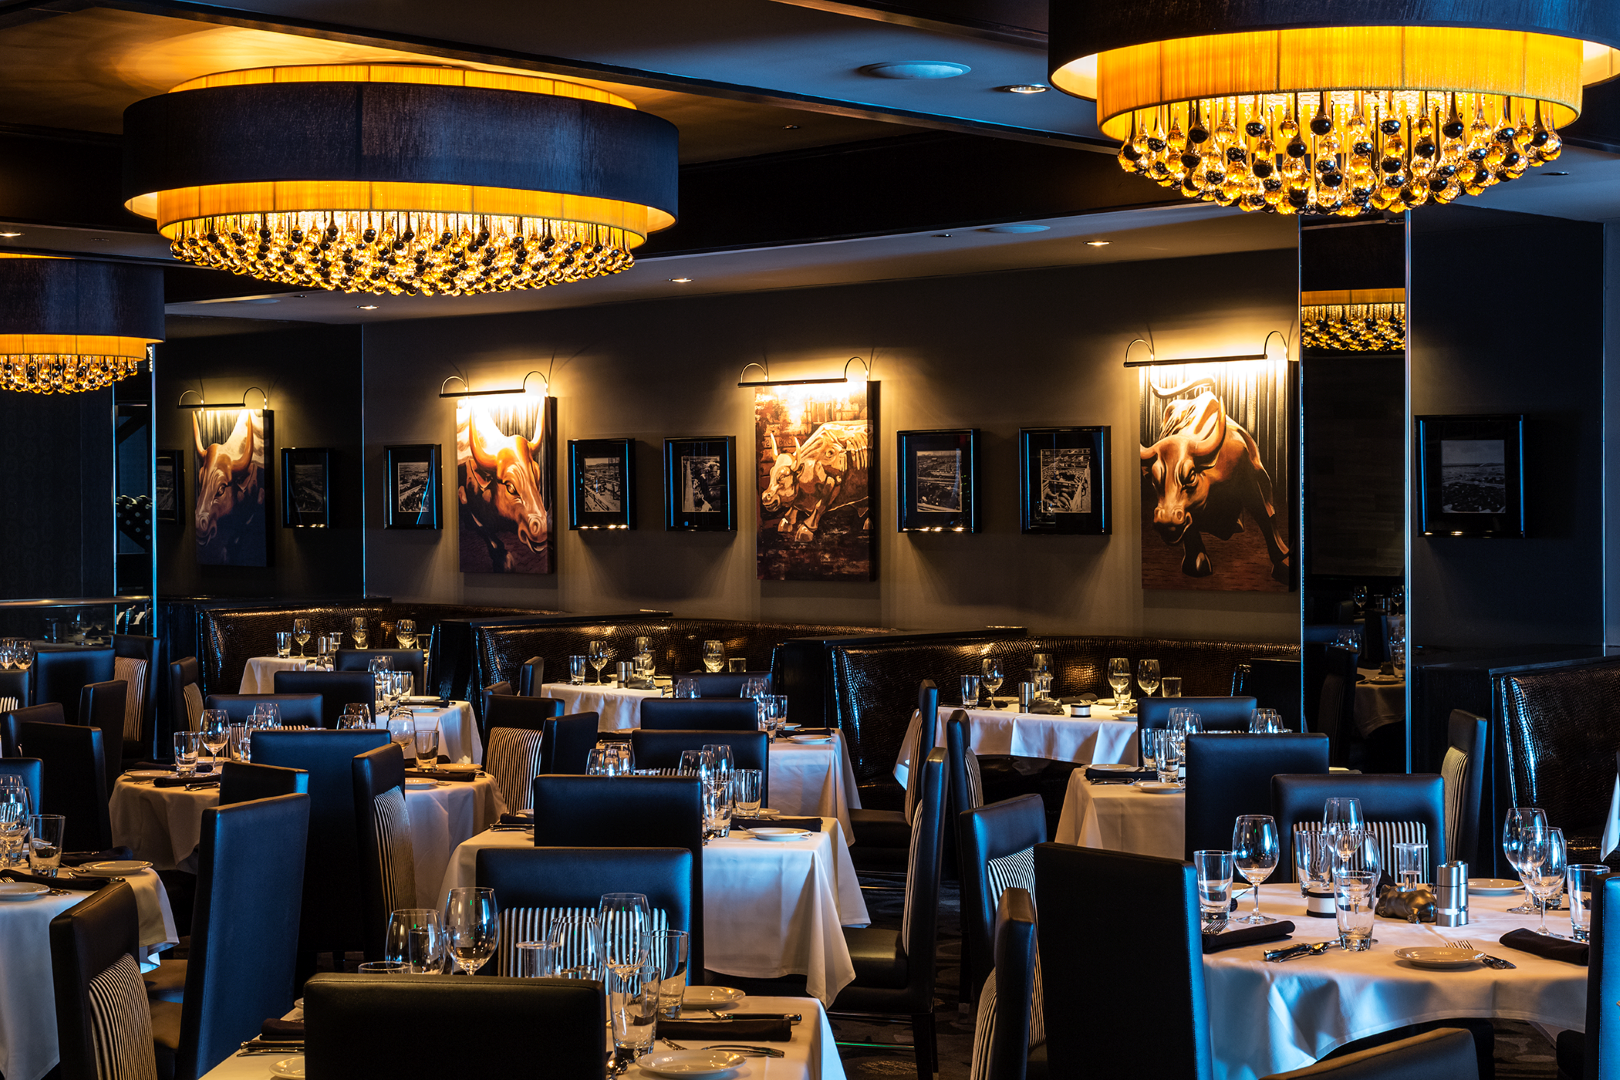 Morton's The Steakhouse image 5